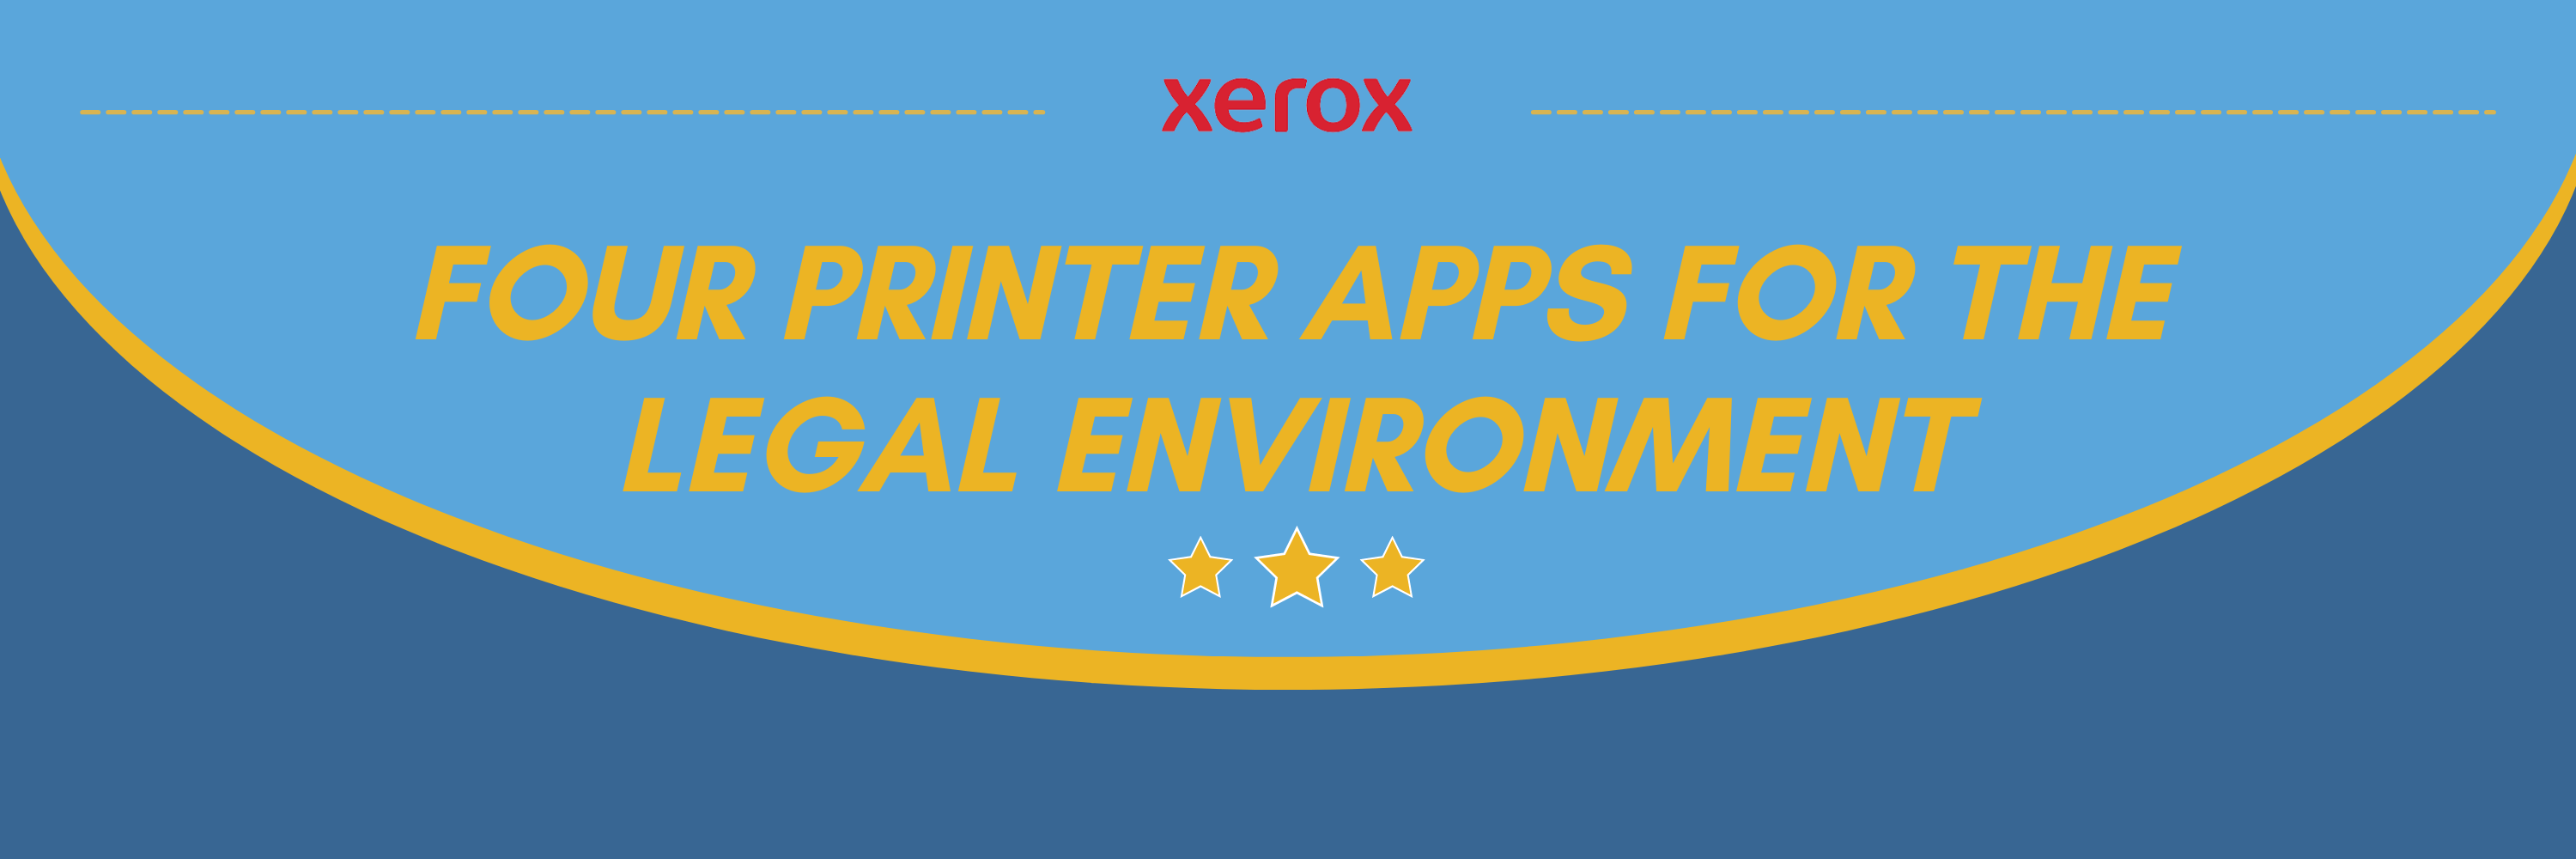 printer apps for legal environment